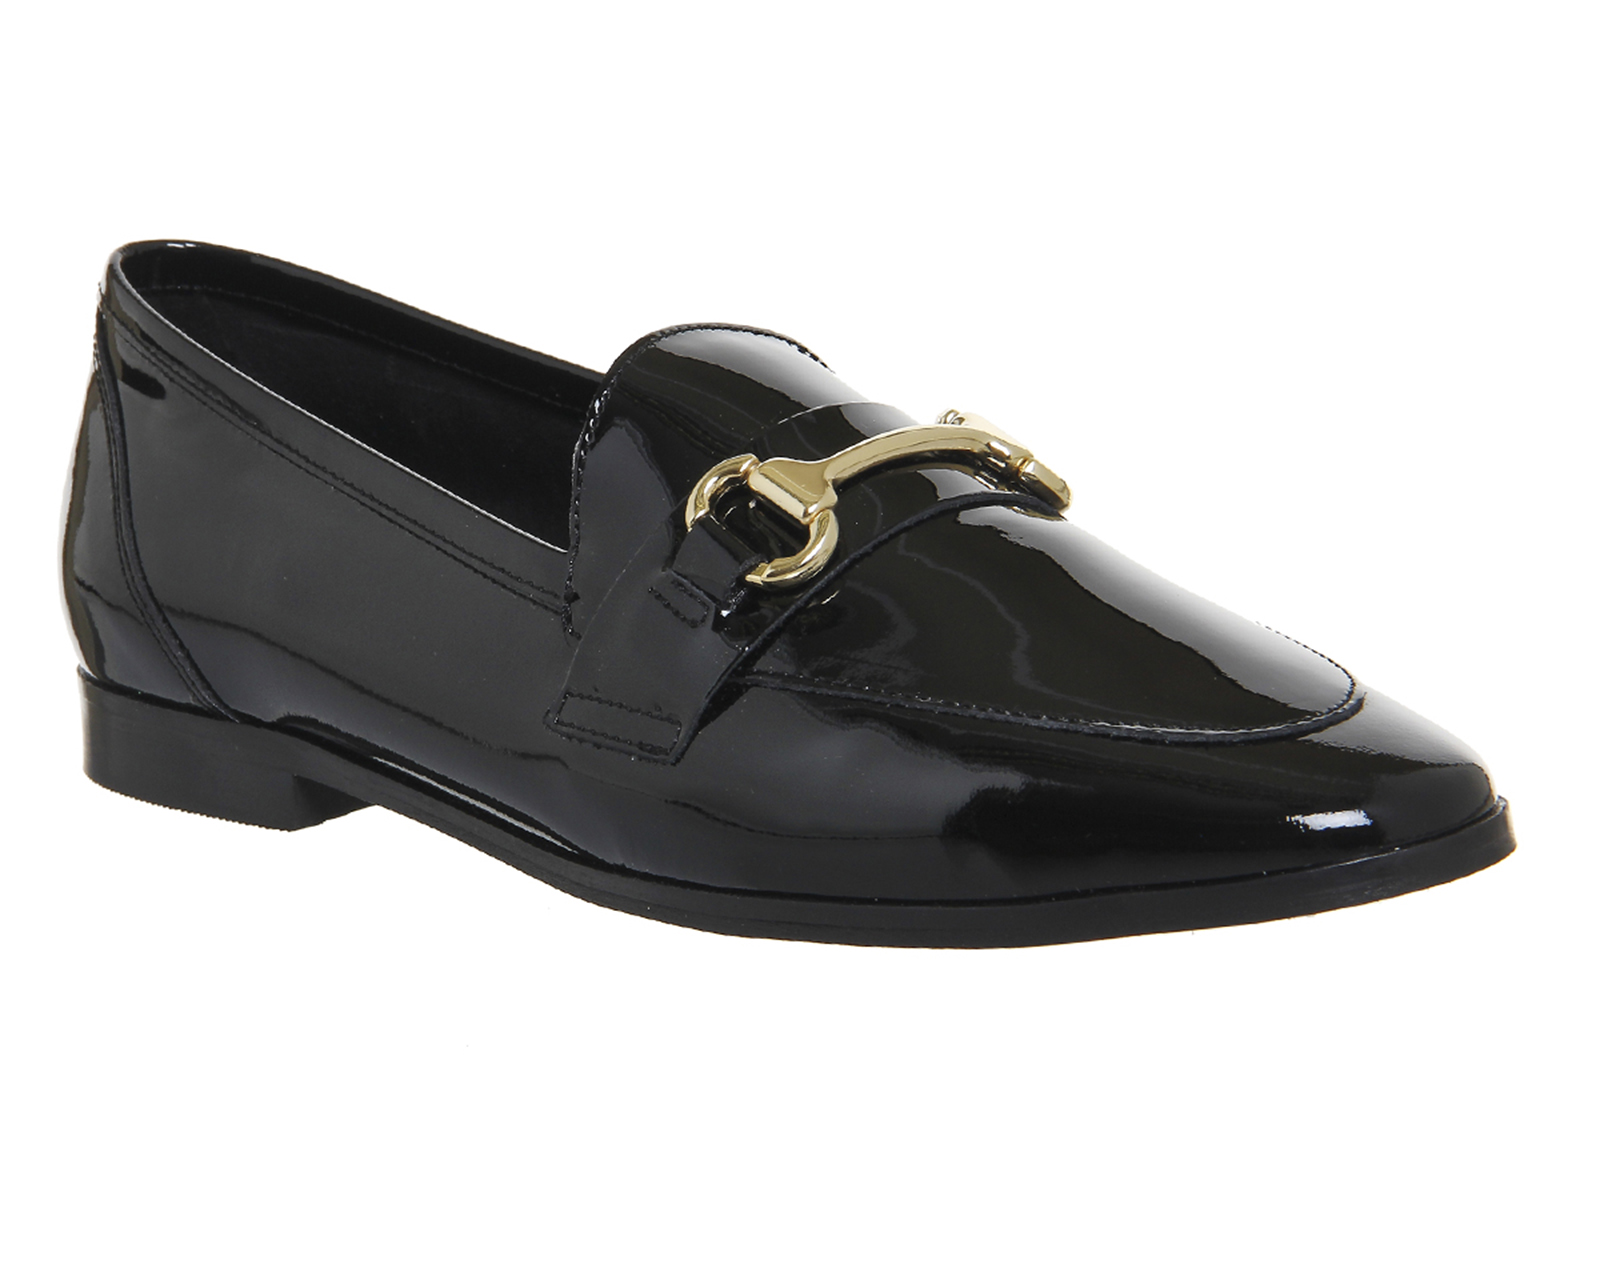 Shop for black penny loafers online at Target. Free shipping on purchases over $35 and save 5% every day with your Target REDcard.